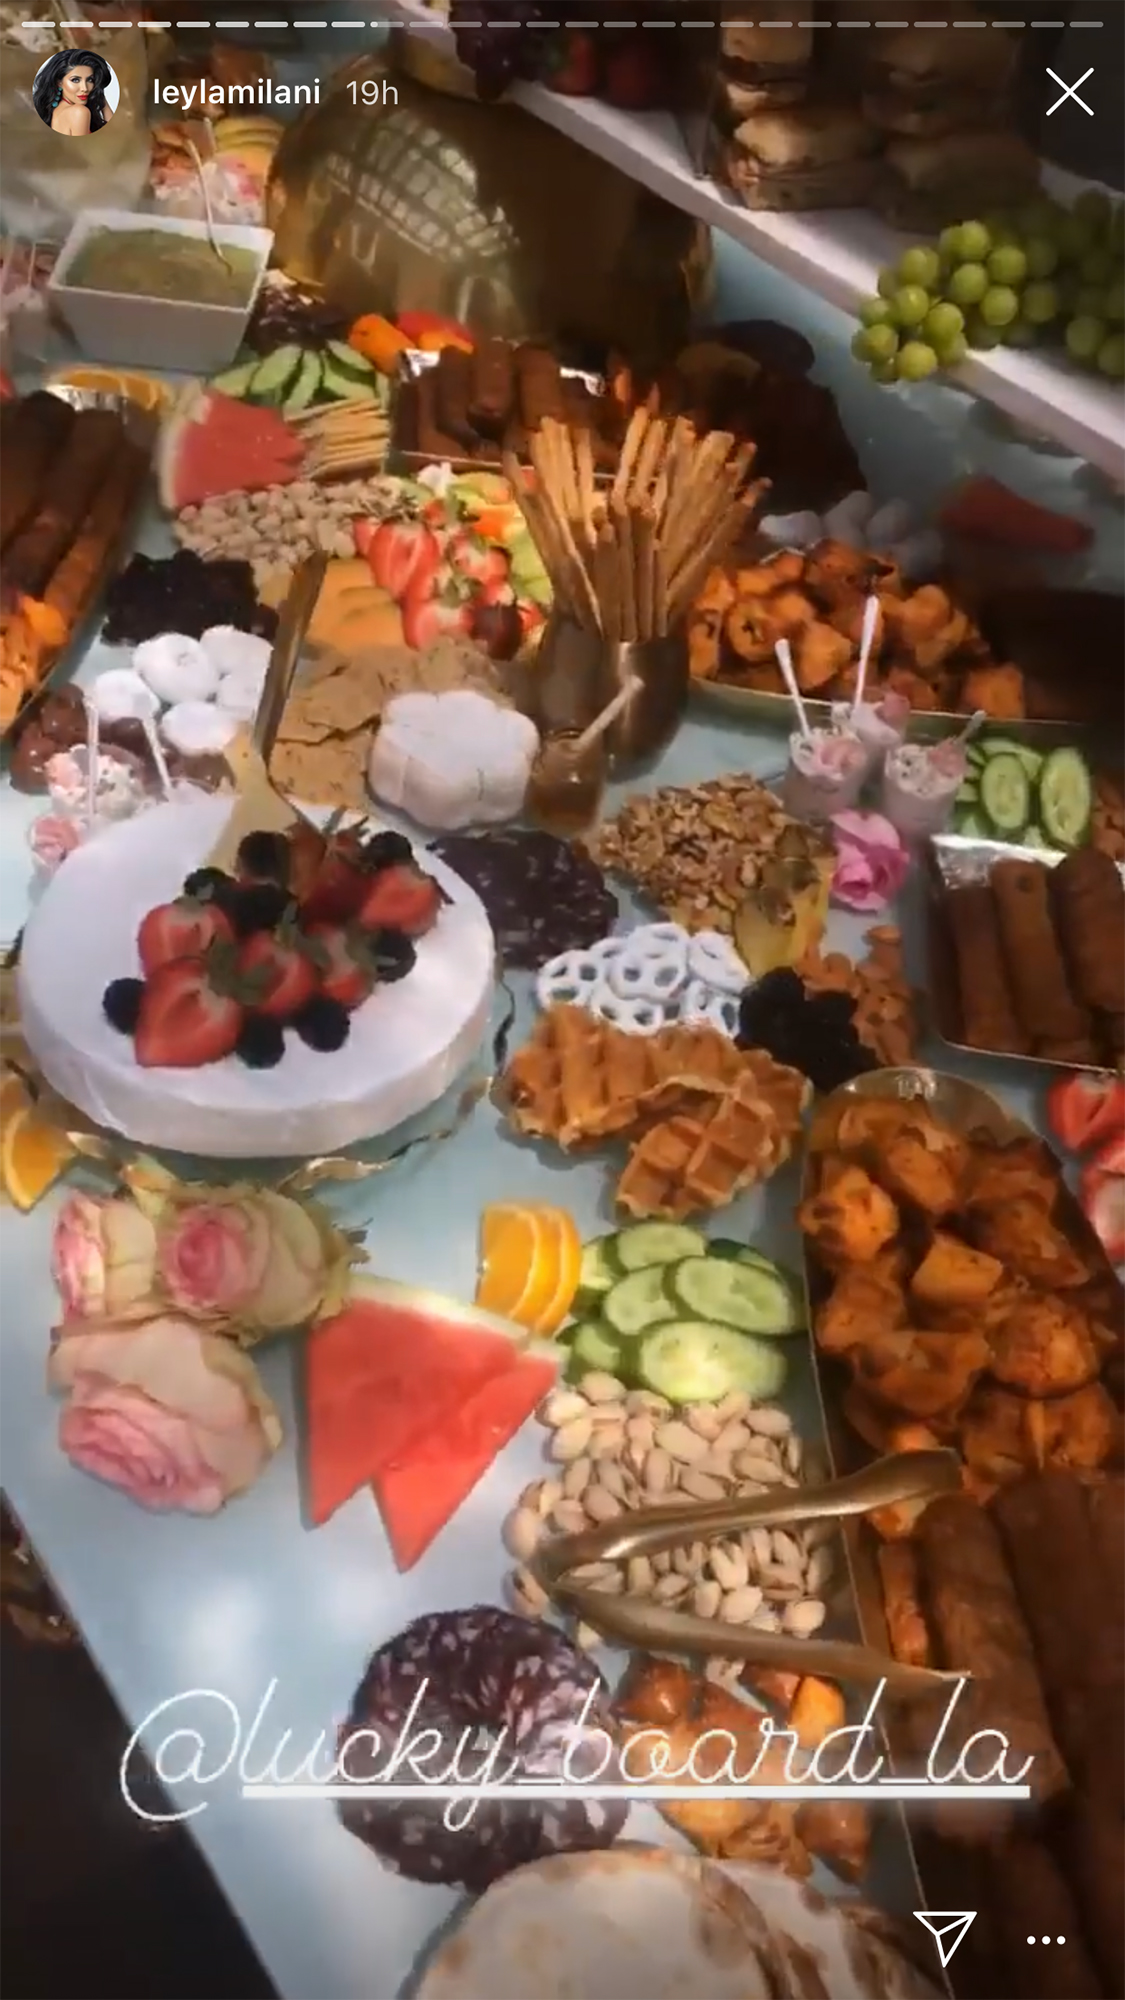 Gretchen Rossi Celebrates Baby Shower - Milani-Khoshbin panned over the party's buffet table.